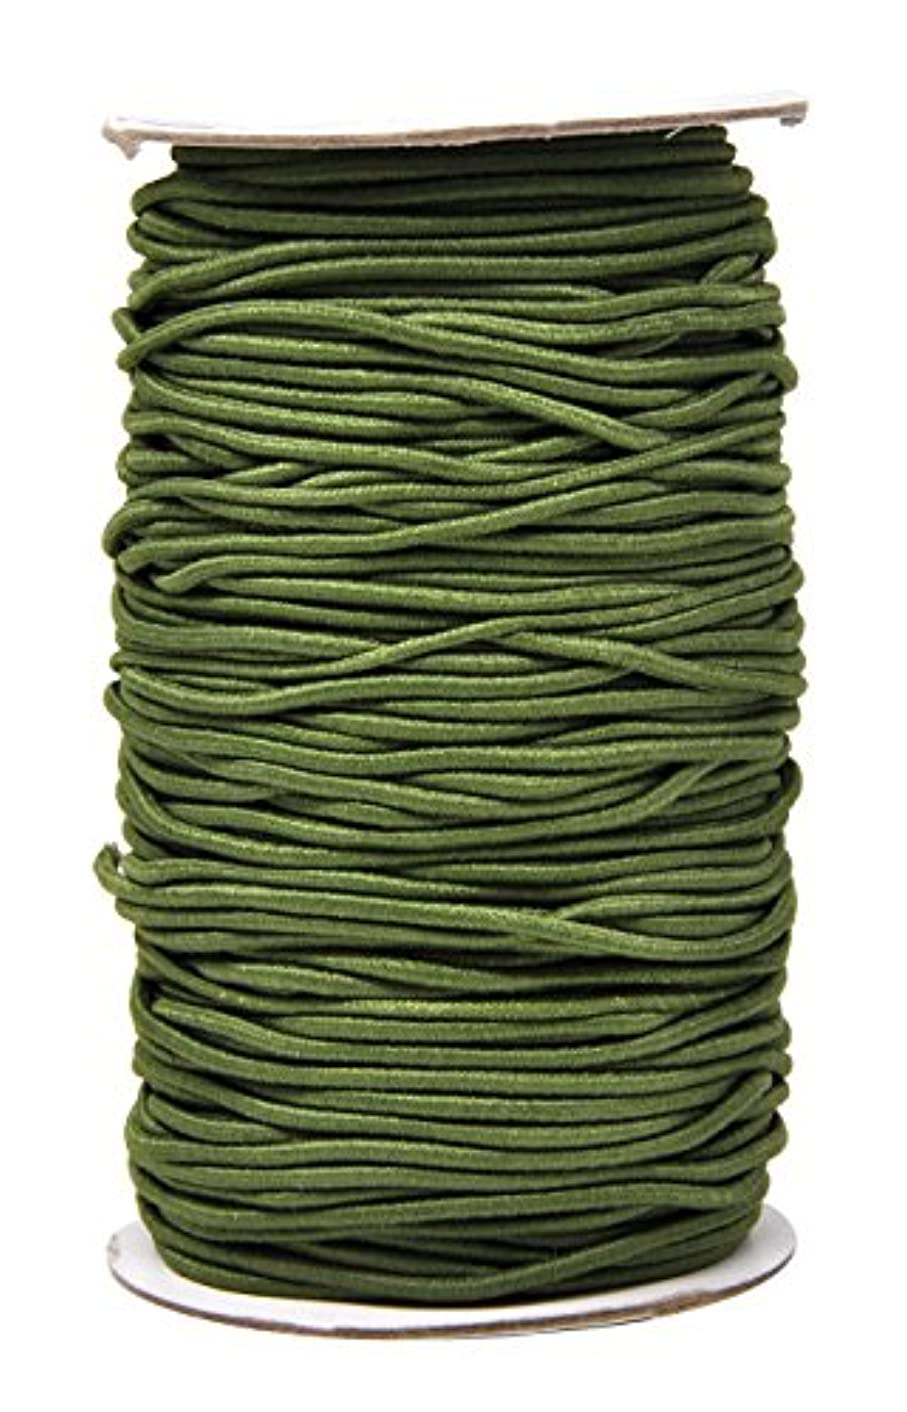 Mandala Crafts 2mm 76 Yards Fabric Elastic Cord, Round Rubber Stretch String for Journals, Beading, Jewelry Making, Masks, DIY Crafting (Olive Green)